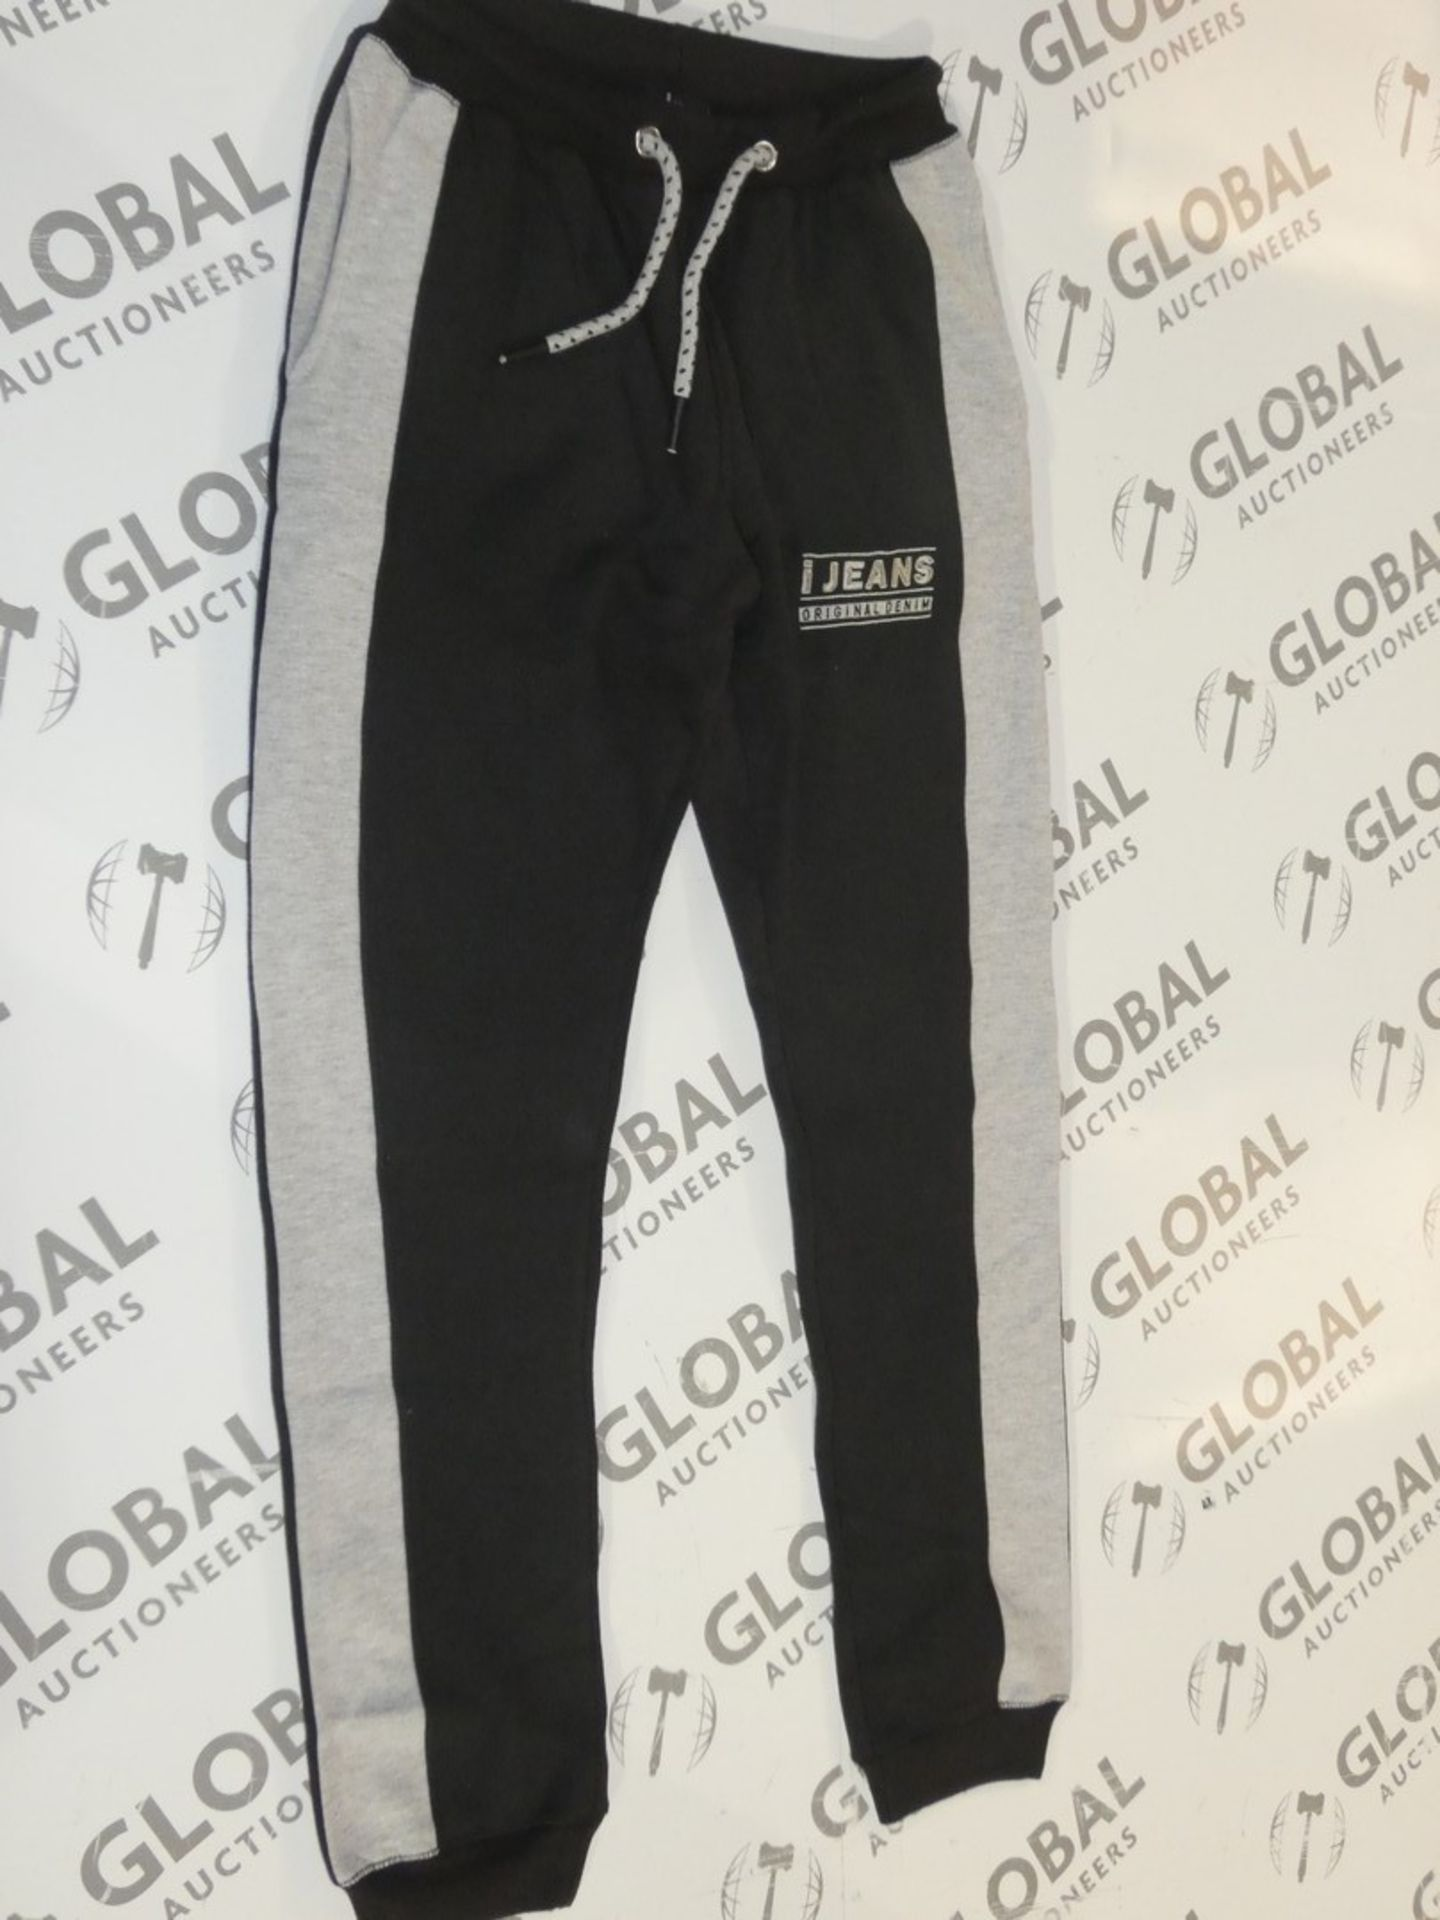 Lot 169 - Assorted Brand New Pairs Of Ijeans Original Denim Black Lounging Pants In Assorted Sizes RRP £25 A